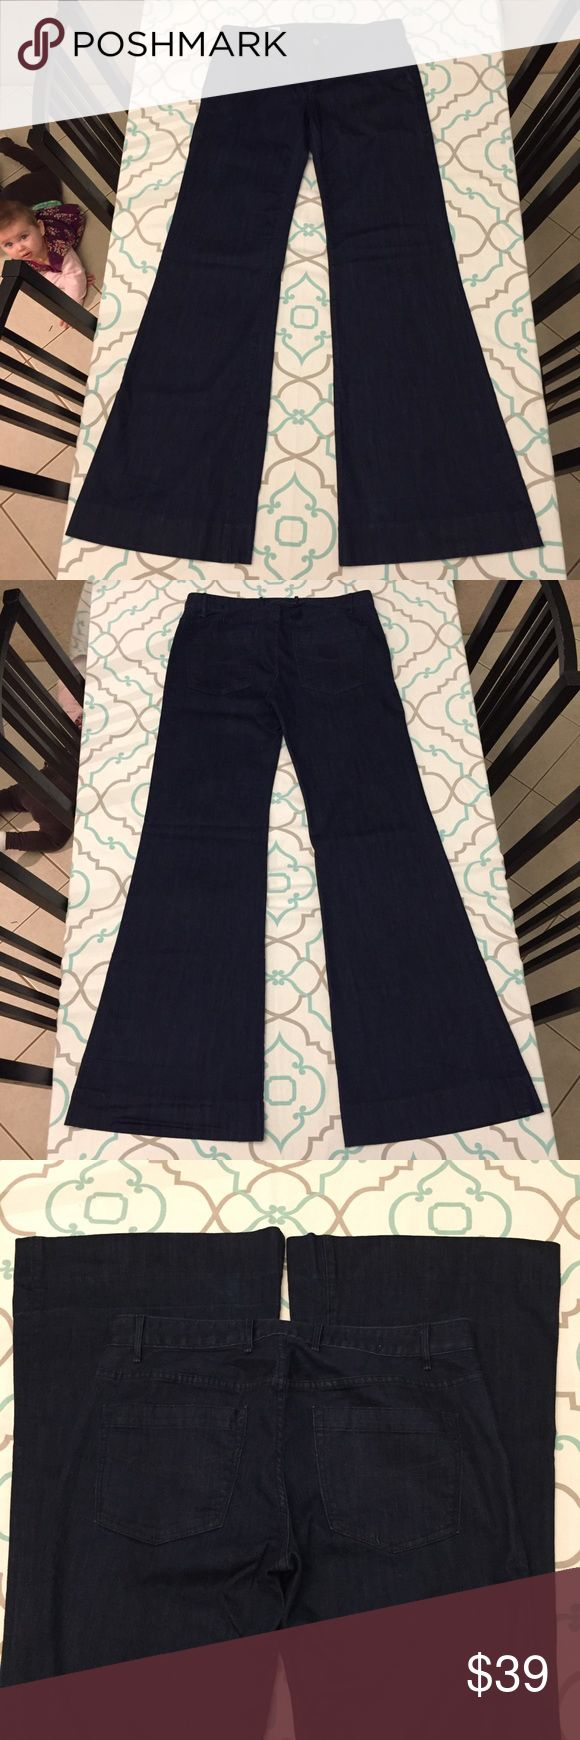 "💙👖Pretty Gap Trouser Jean👖💙XX Long 36"" inseam! 💙👖Beautiful Gap Jeans👖💙 Modern Trouser. Size 31 (11/12). Great Stretch! 36.25"" Extra Extra Long Inseam. Great with heels. Great for tall ladies. A folded hem has been let out. There is is a very very slight fade line across pant legs 4.5"" from bottom. Slightly Wrinkled at bottom hem. Excellent Used Condition!! Great for work, outings, and special evenings too. Ask me any questions! : ) GAP Jeans Flare & Wide Leg"